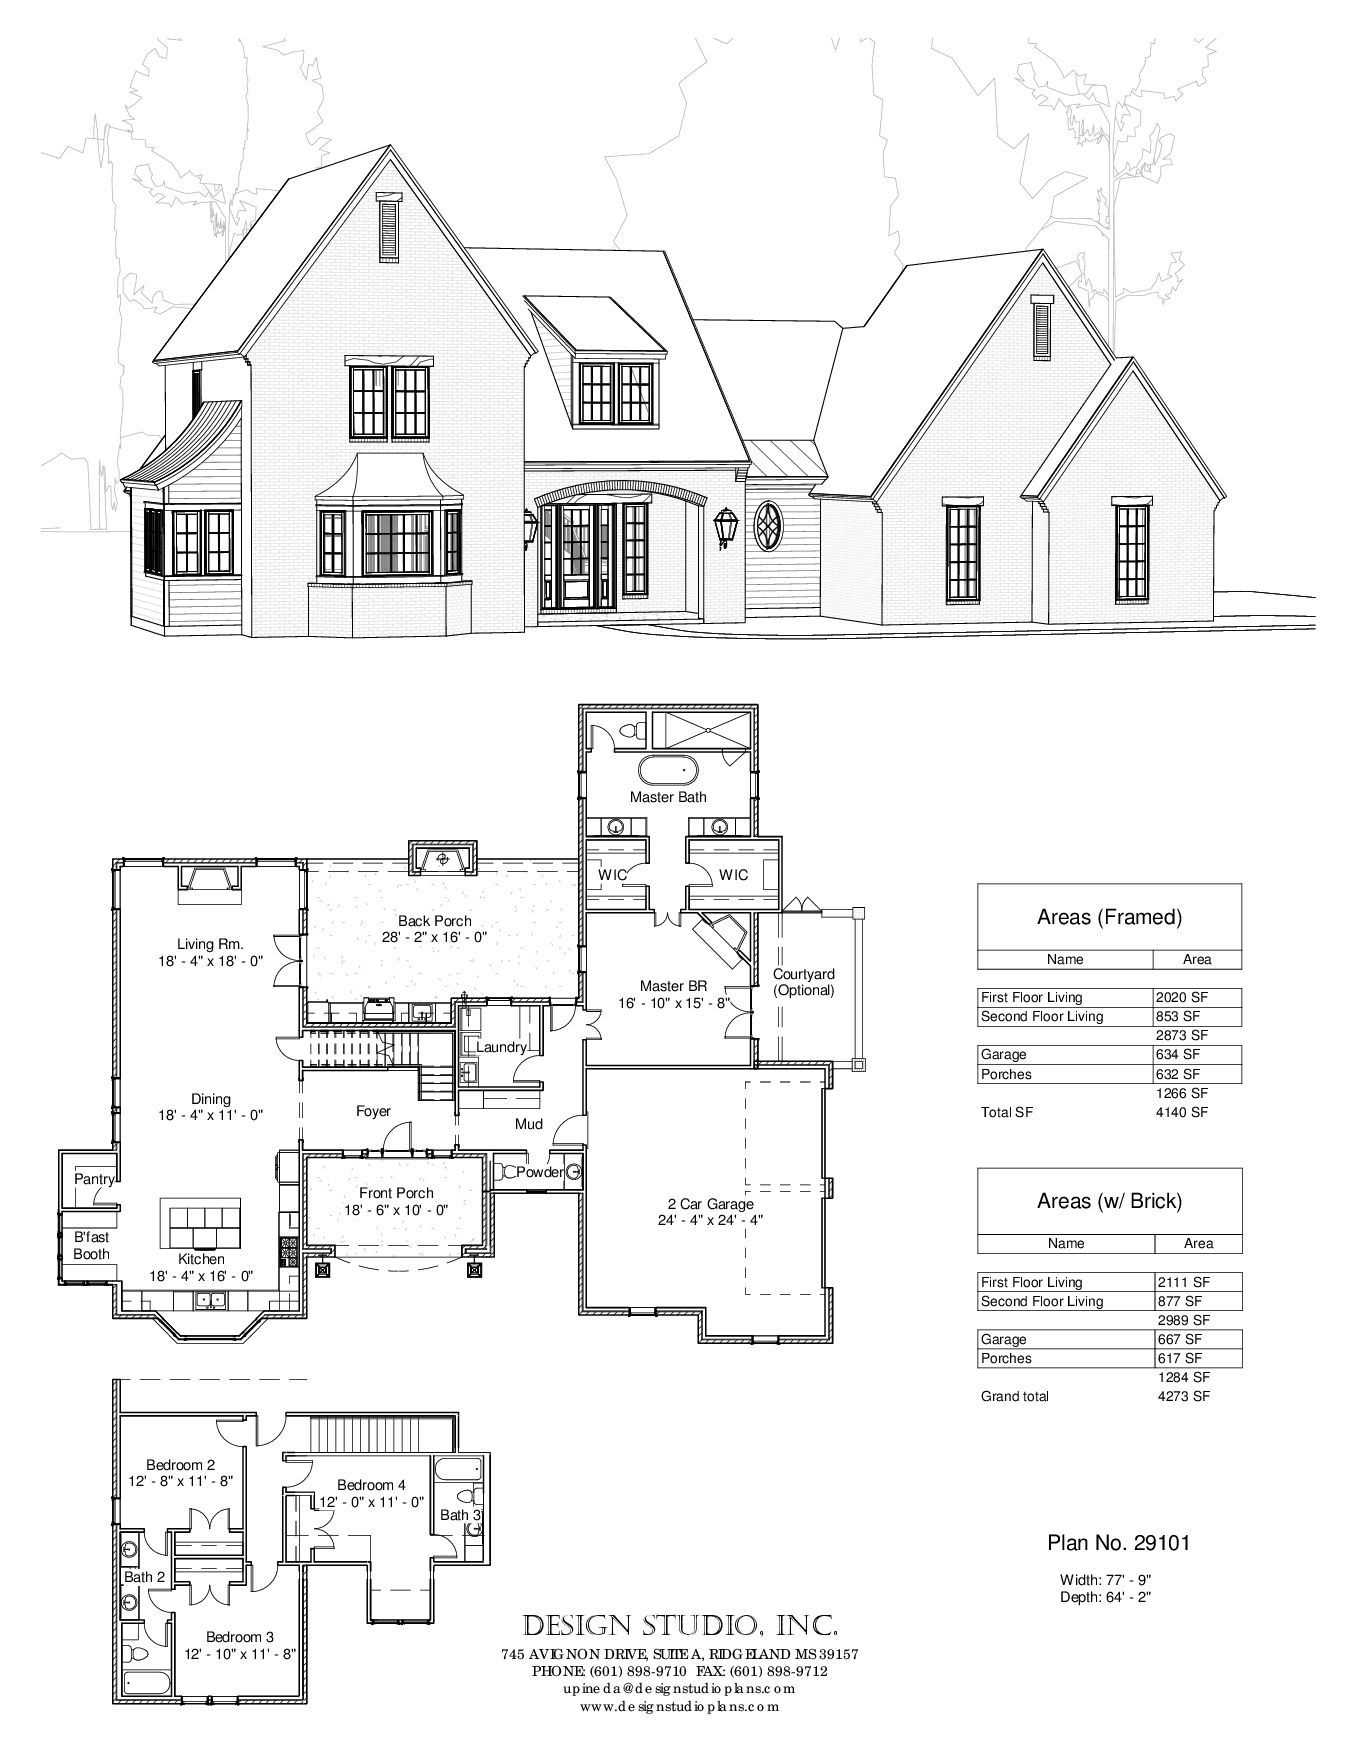 Love This Floorplan Would Change Exterior To Have More Farmhouse Feel Add Porches House Blueprints House Plans House Layouts